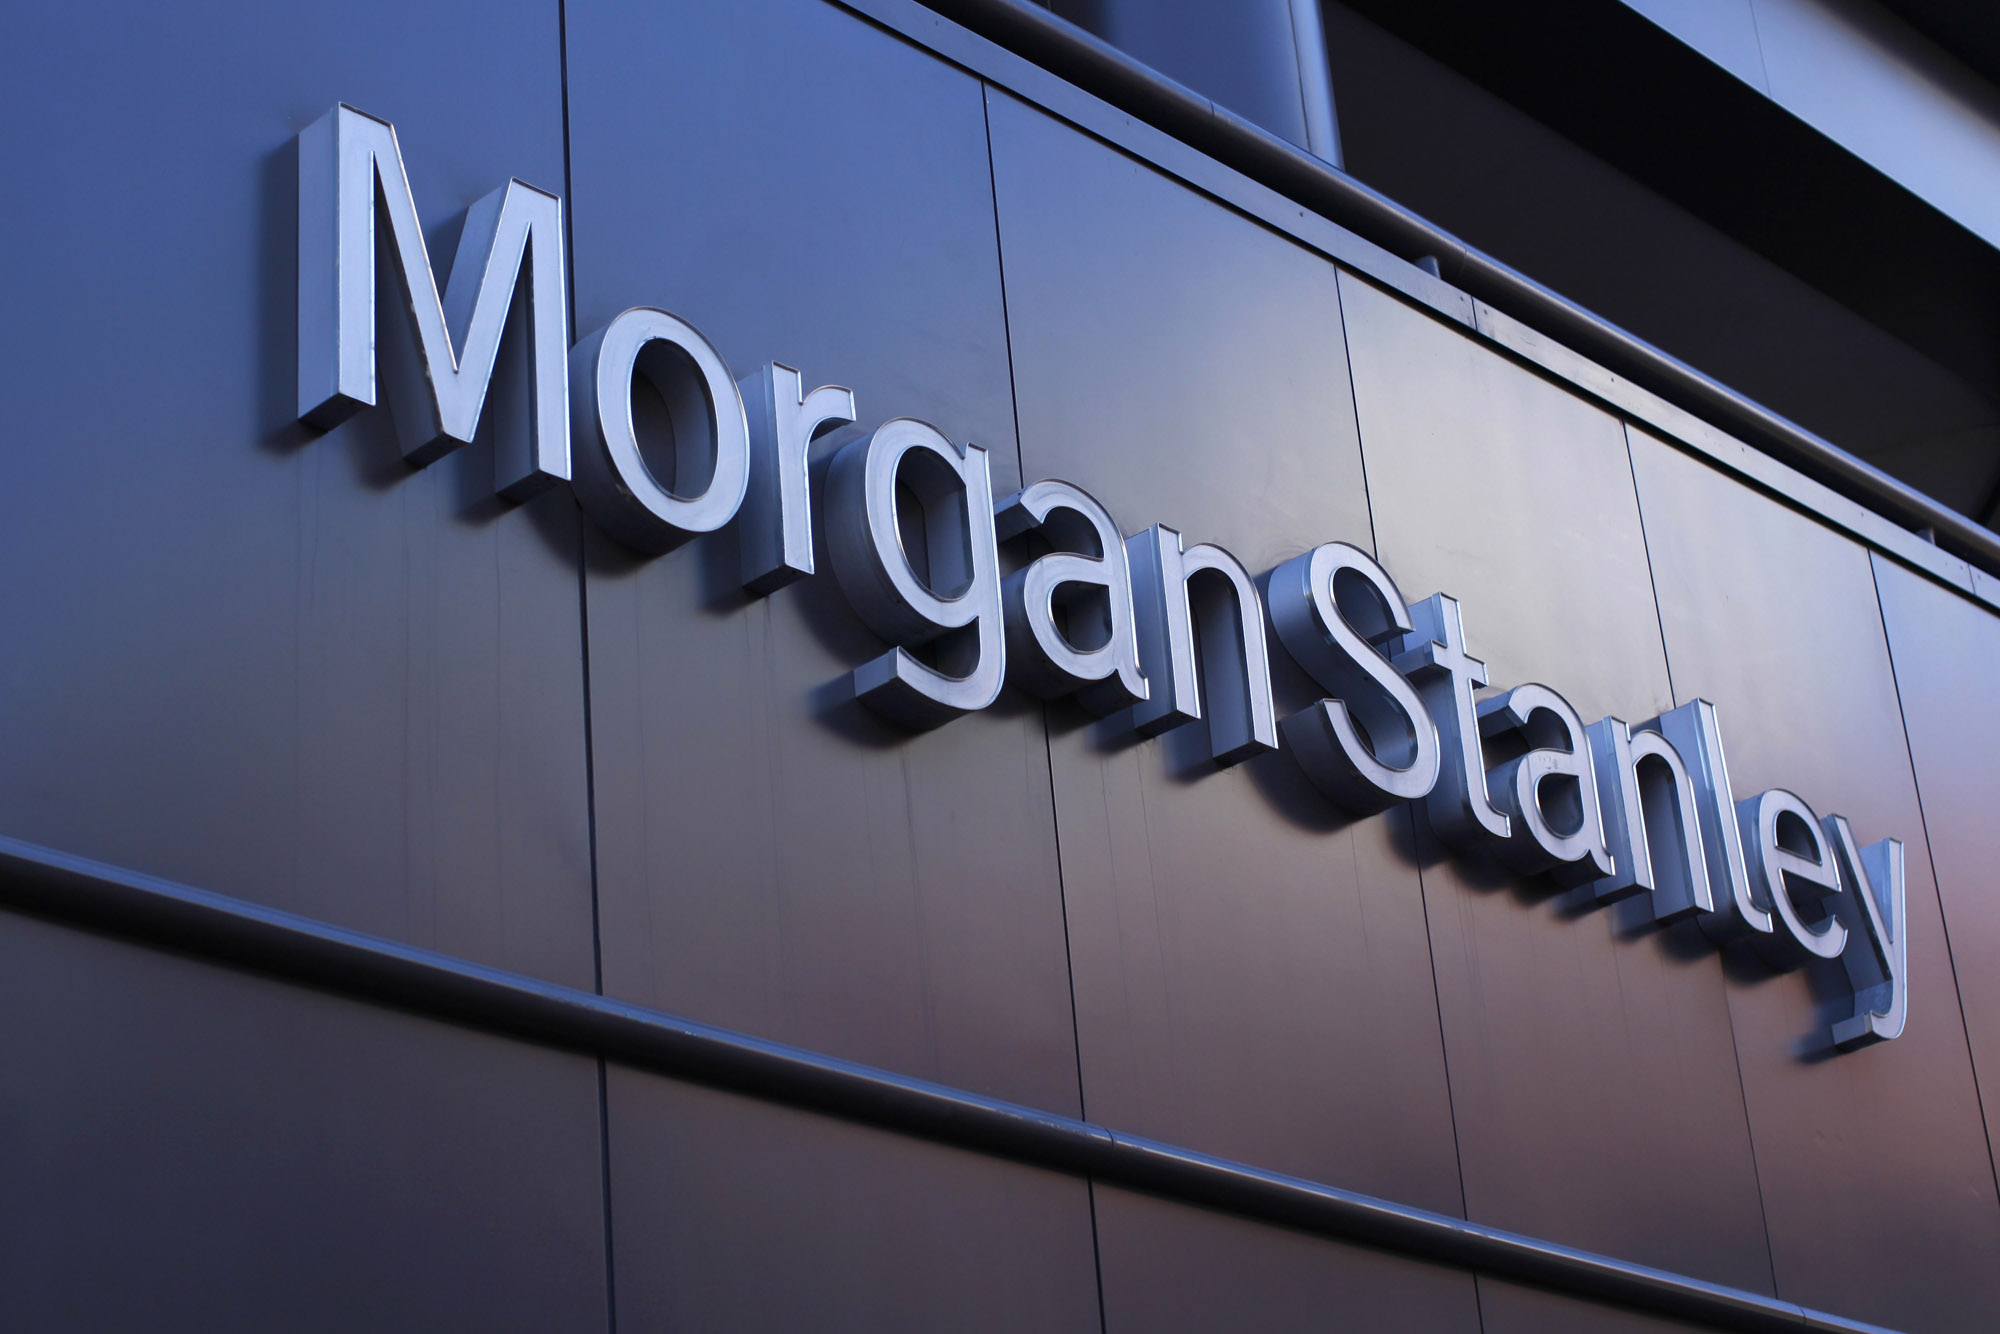 Morgan Stanley Launches Sustainable Investing Course